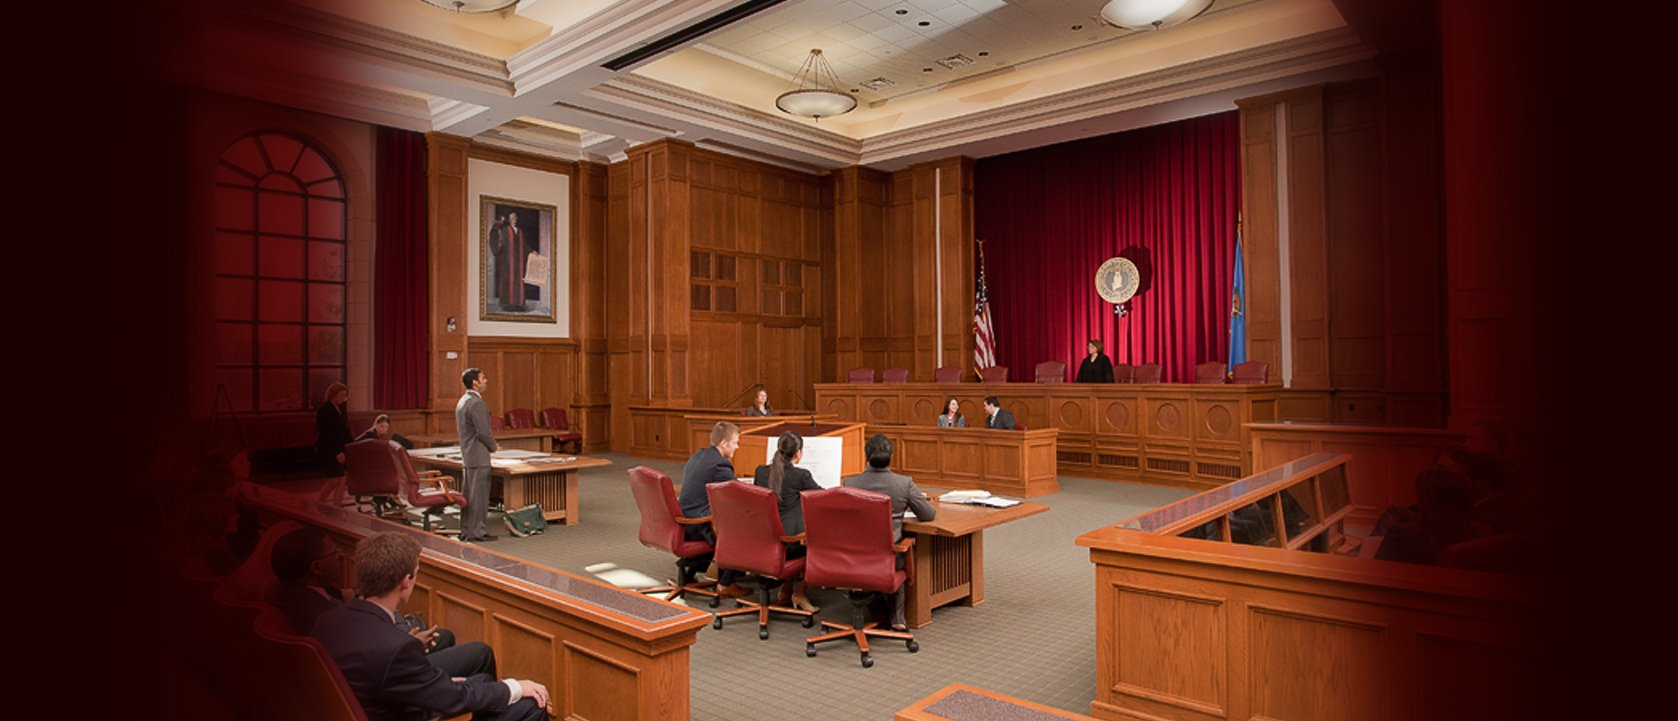 bell_courtroom_04_0